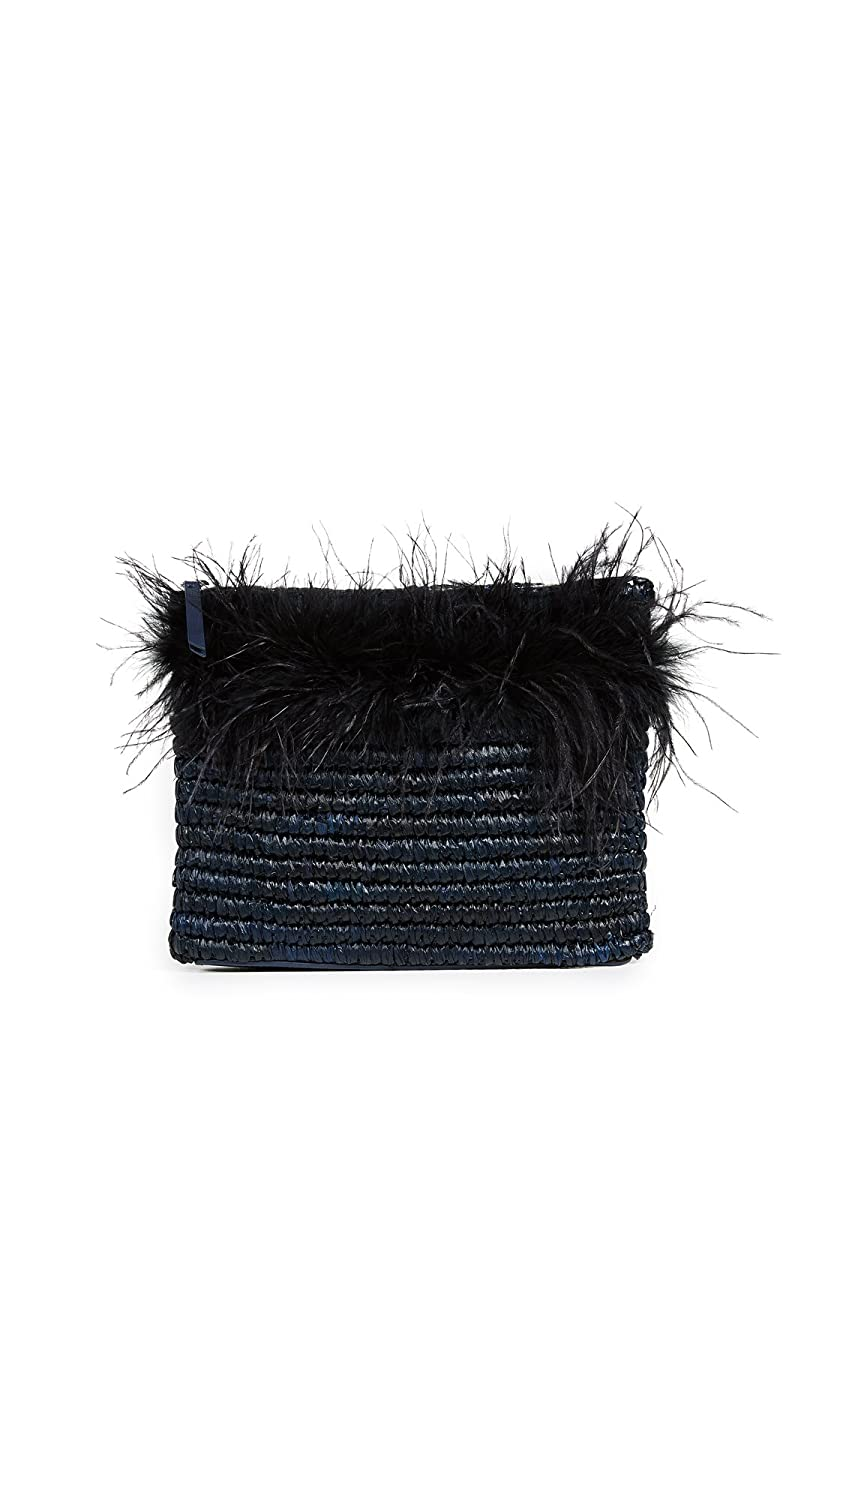 Loeffler Randall Women's Feather Tassel Pouch Eclipse/Black One Size